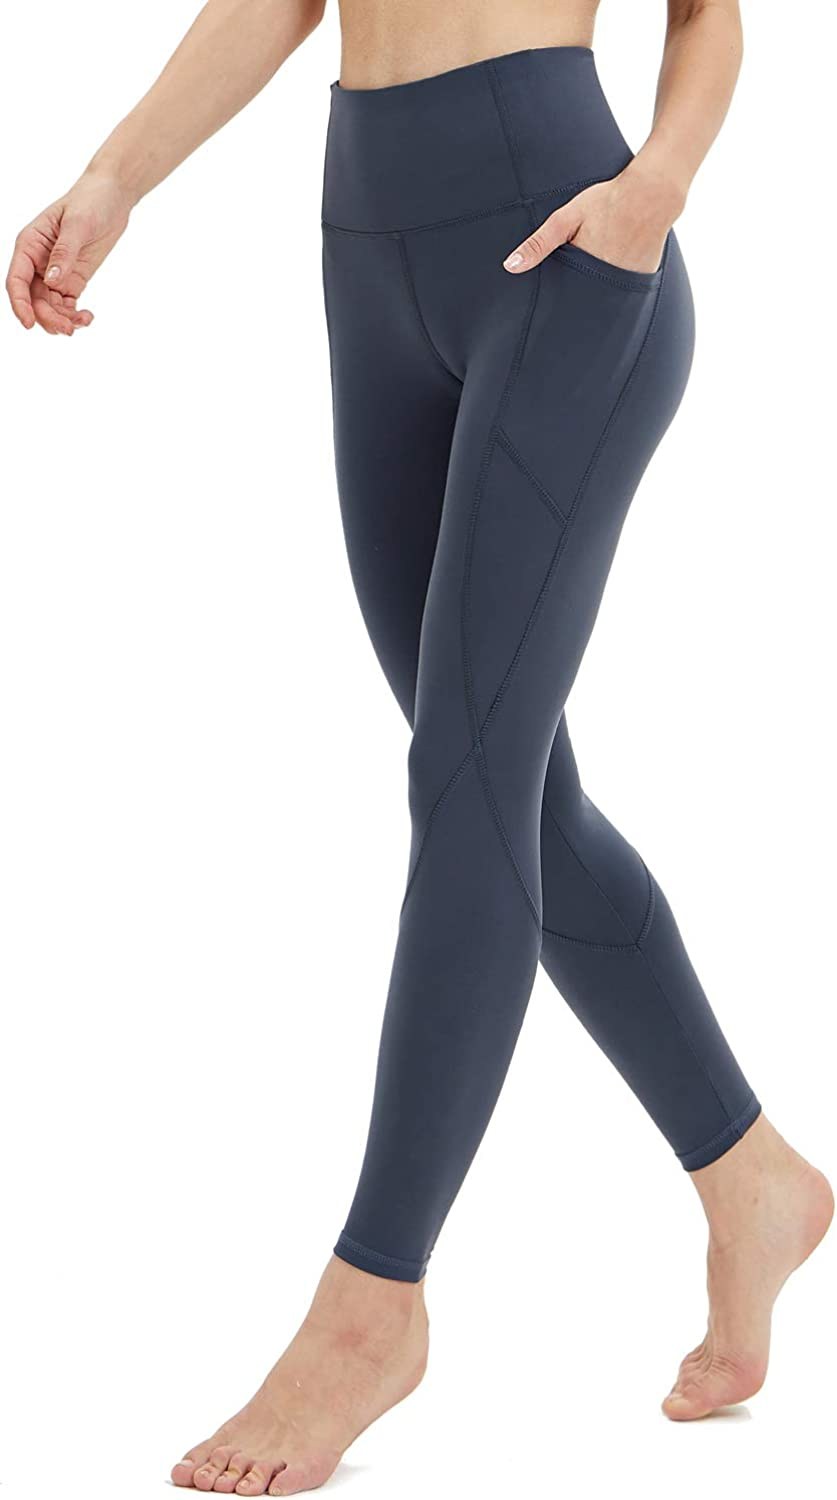 Persit Women's Premium Yoga Pants with Pockets, Non See-Through Tummy Control 4 Way Stretch High Waist Leggings: Clothing